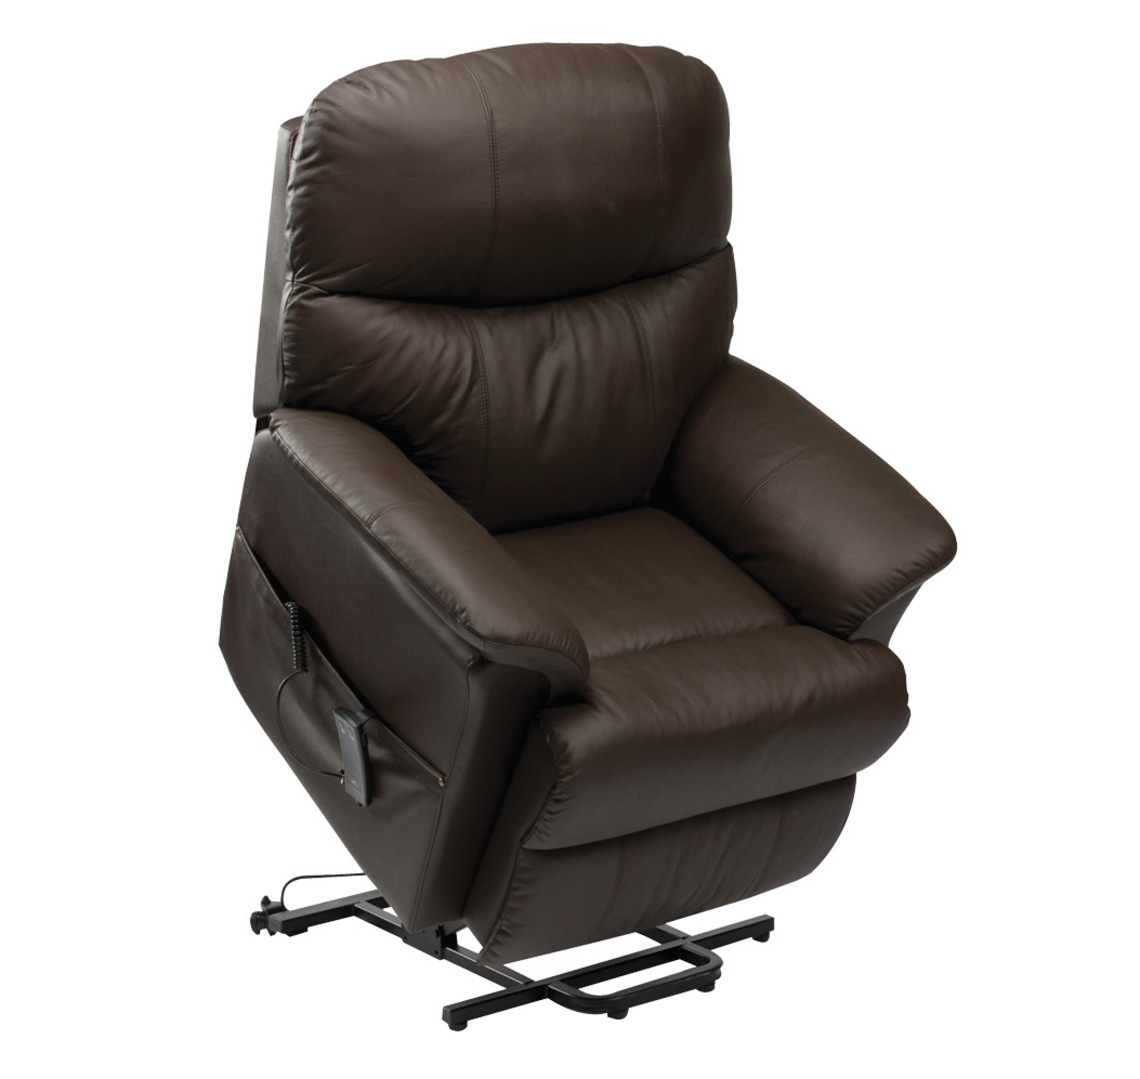 Lars Electric Recliner - World Of Scooters Manchester